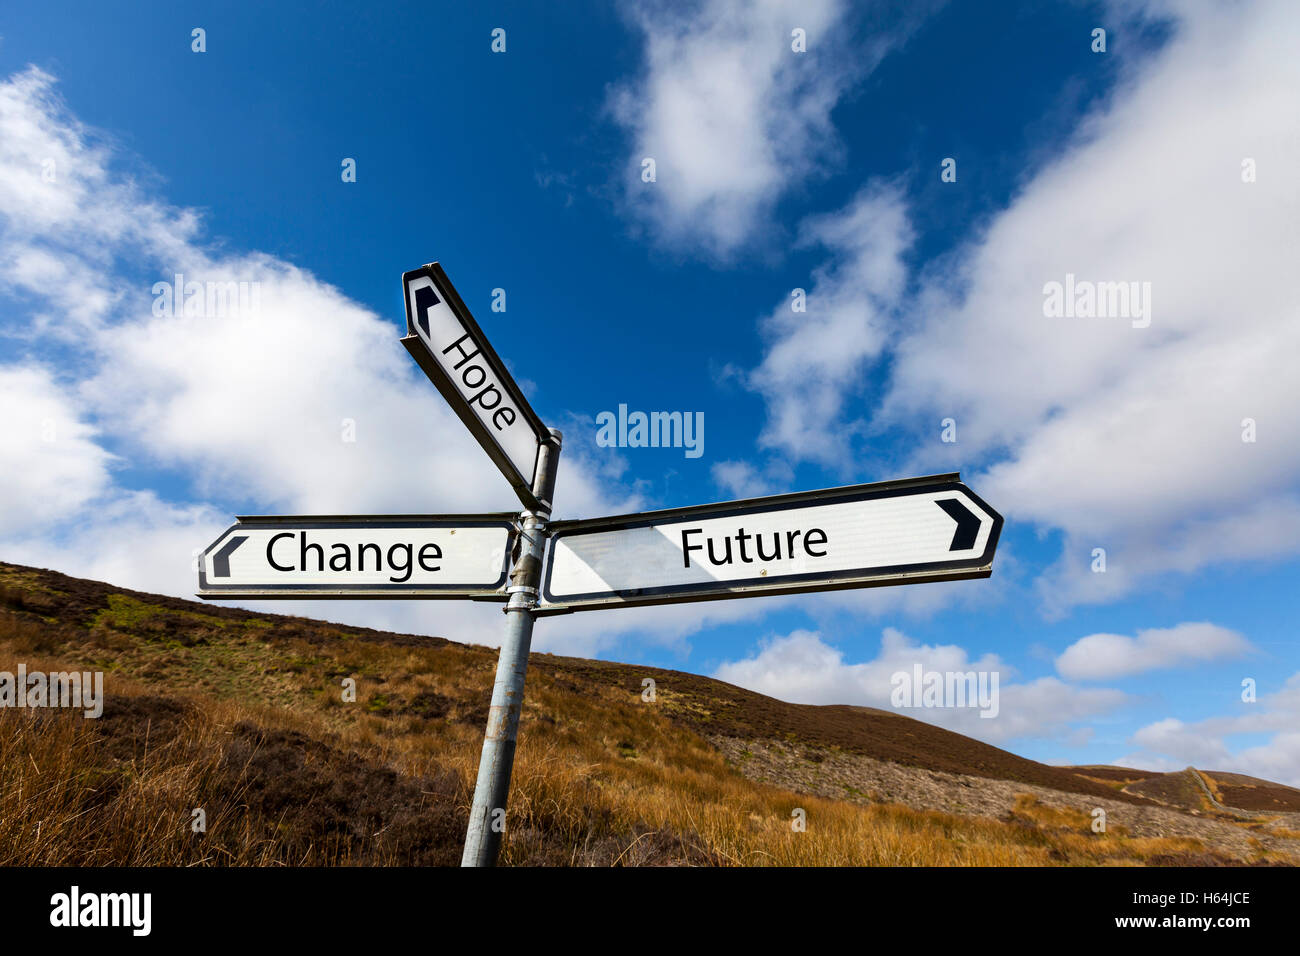 Future change hope future concept sign having hope wanting to change the future prospects outlook UK GB England - Stock Image